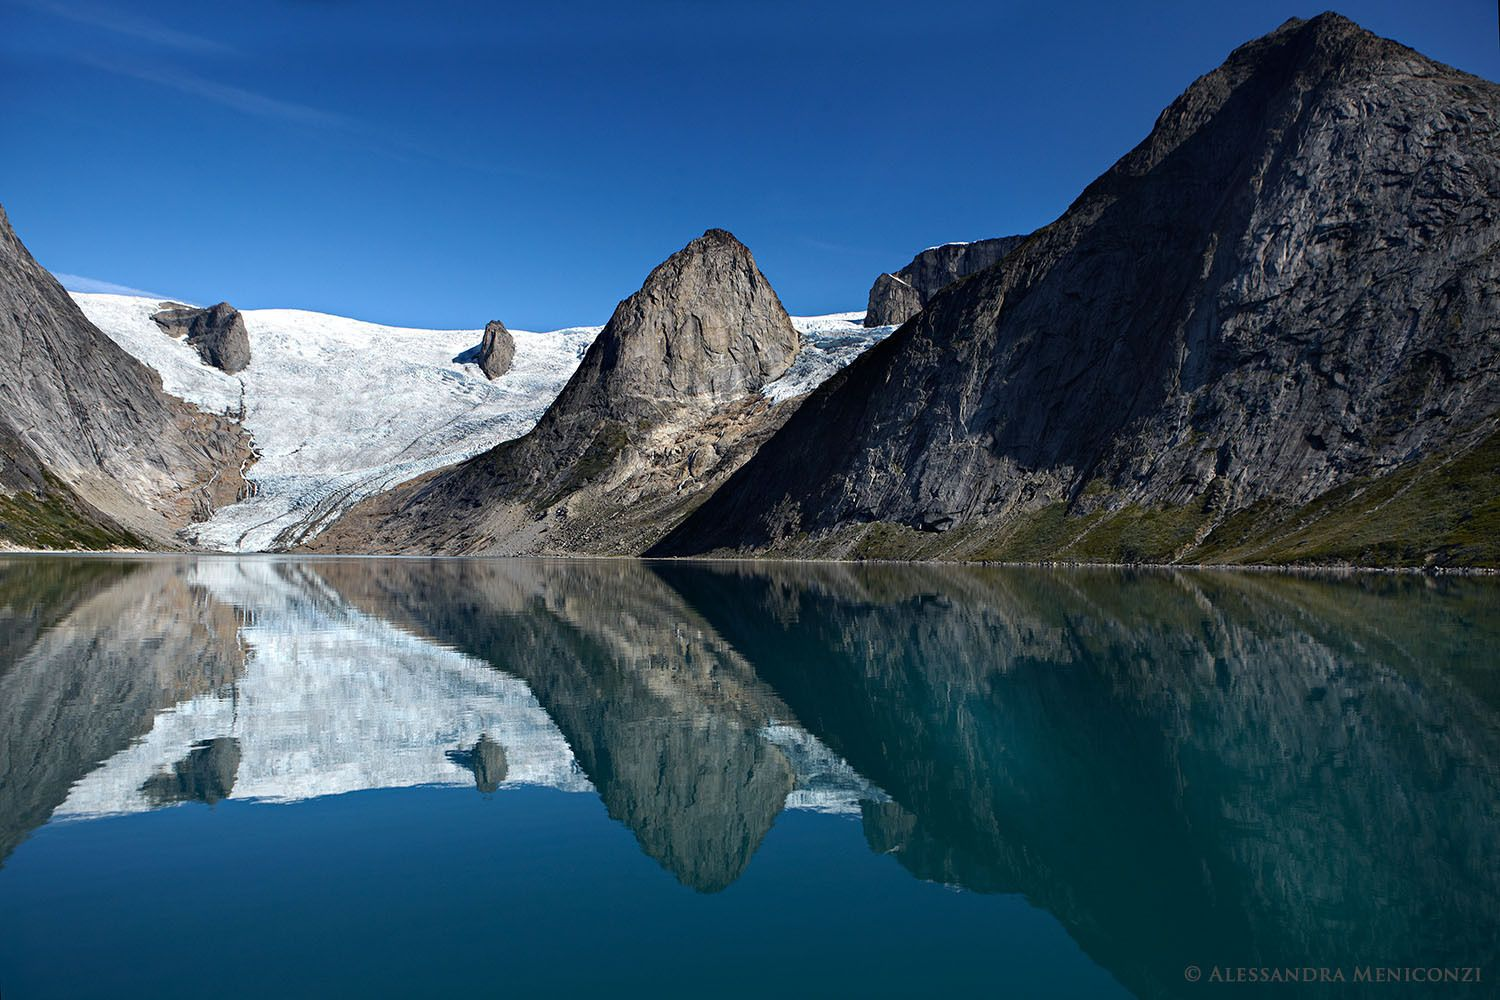 A receding glacier and pinnacle peaks in Tasermiut Fjord, South Greenland.